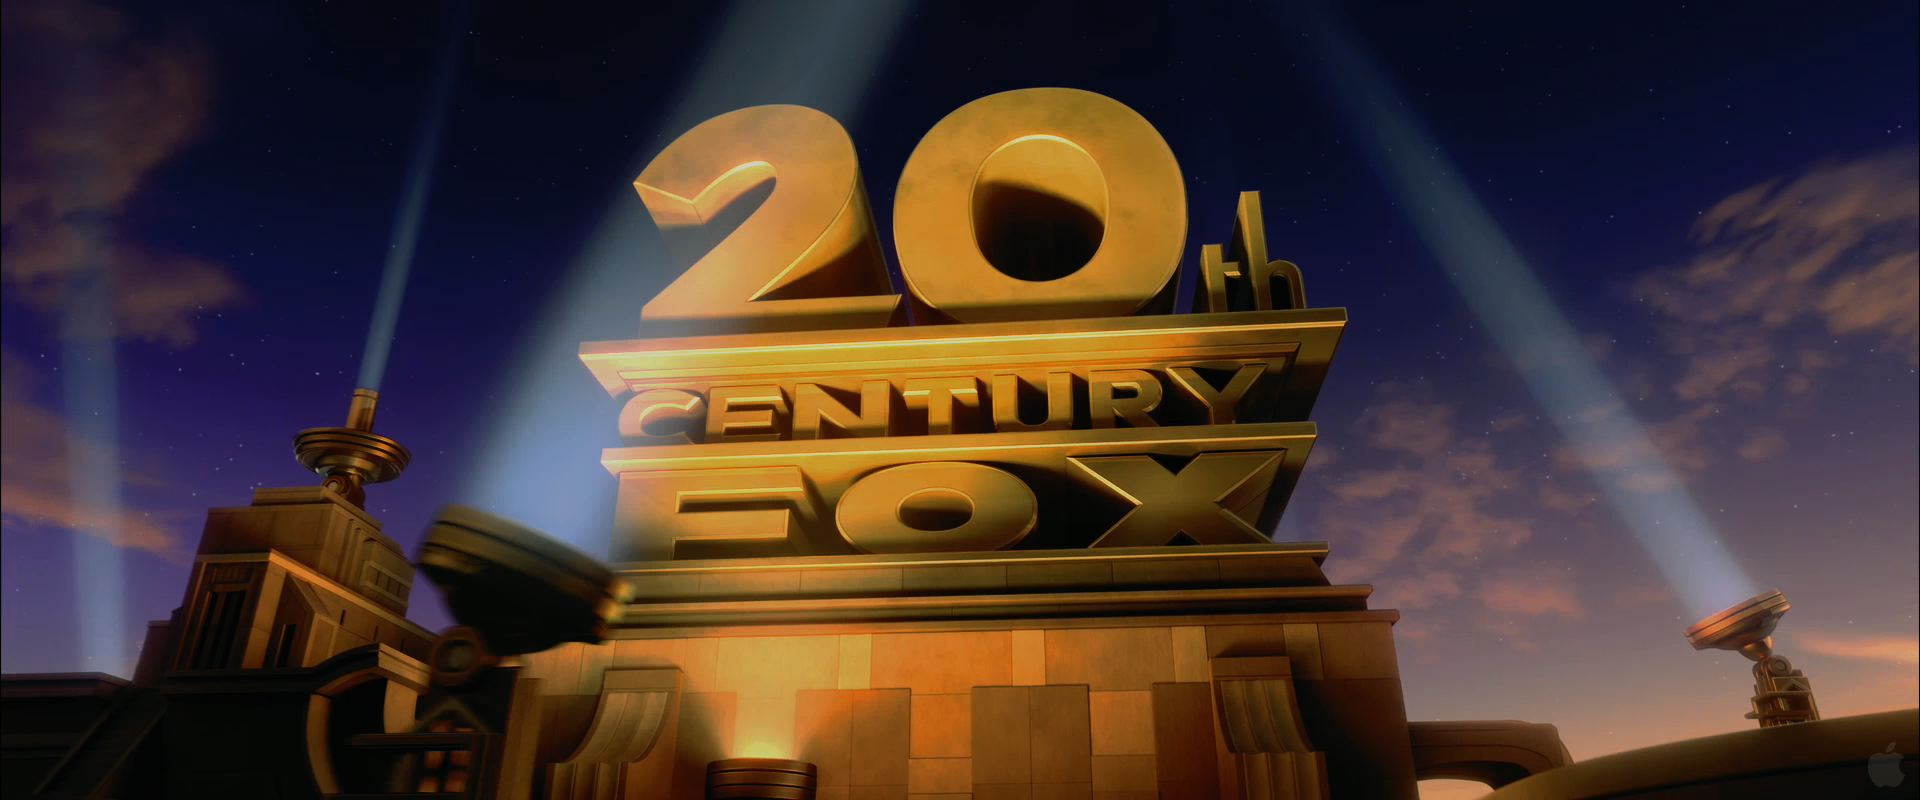 20th Century Fox Movie Studios Logo Desktop Wallpaper